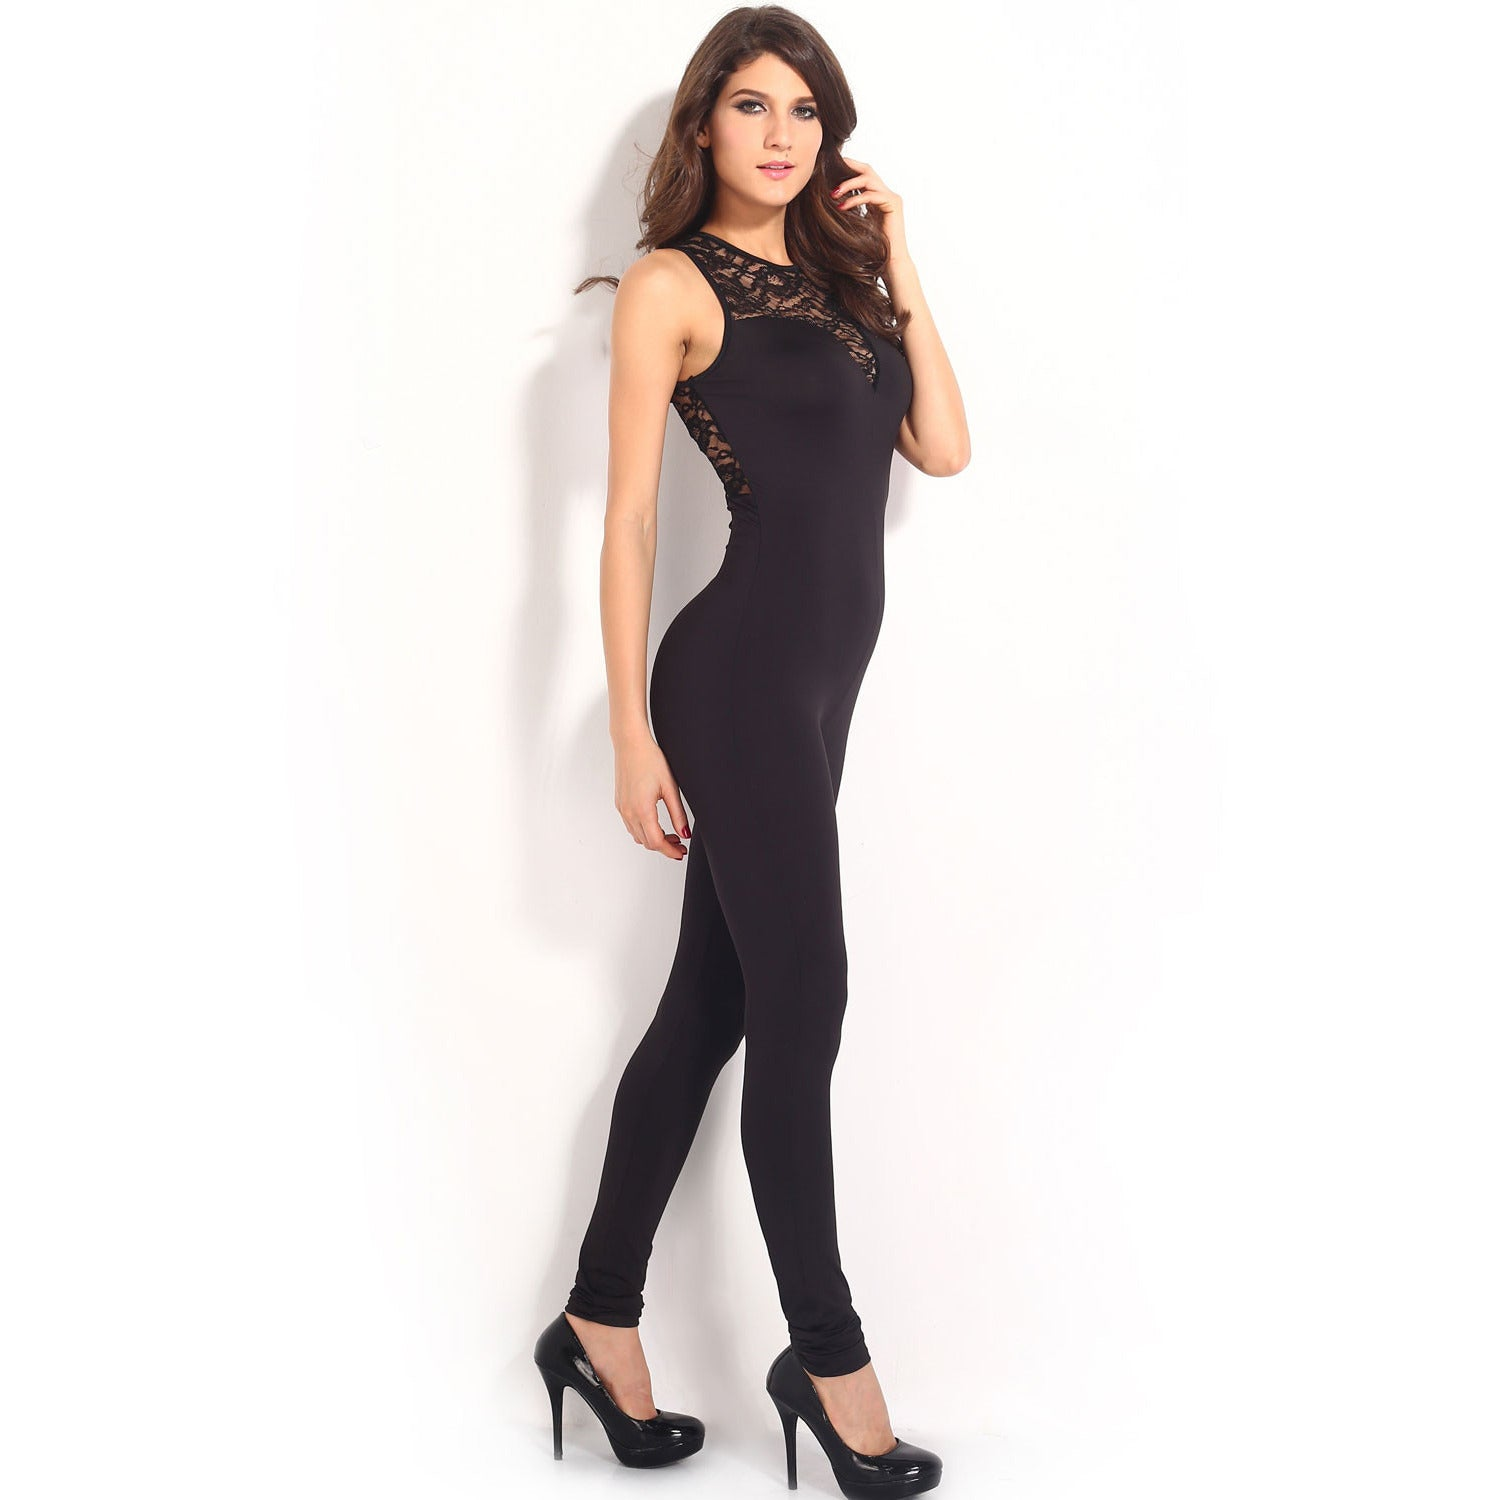 Heart-Neck Lace Black Jumpsuit LAVELIQ - LAVELIQ - 4